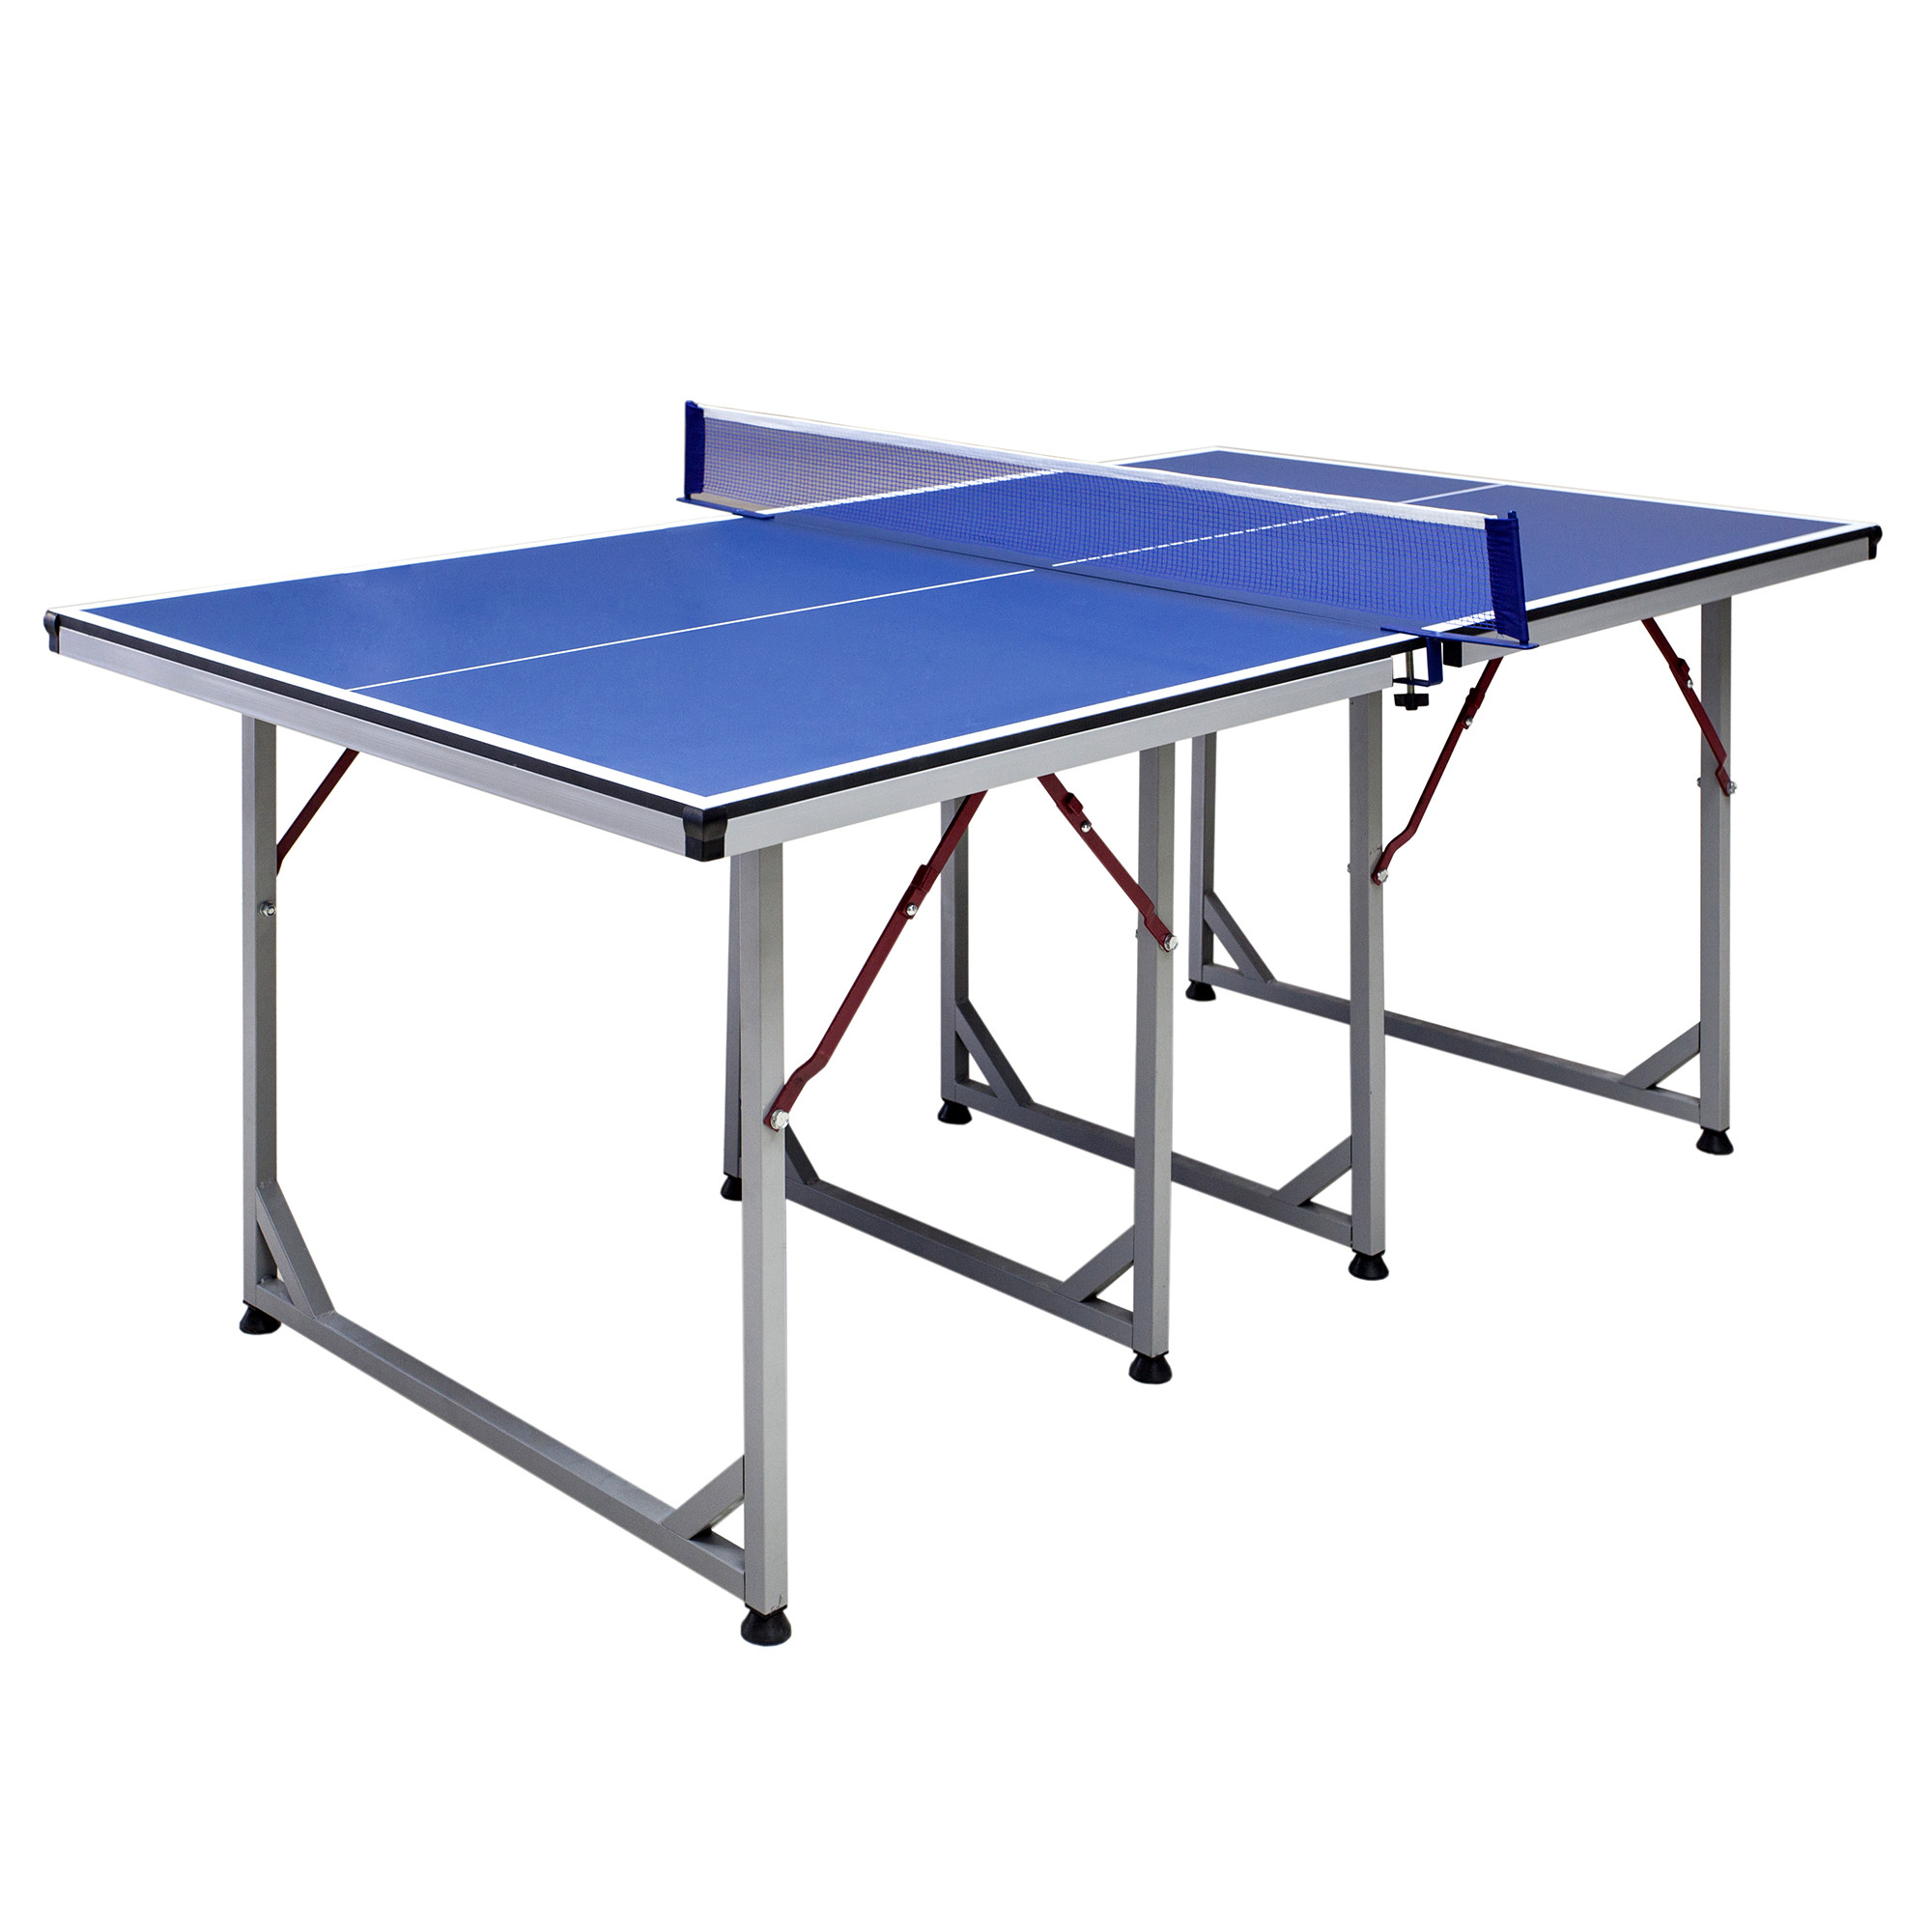 Hathaway Reflex Mid-Sized Table Tennis Table, 6-ft, Blue